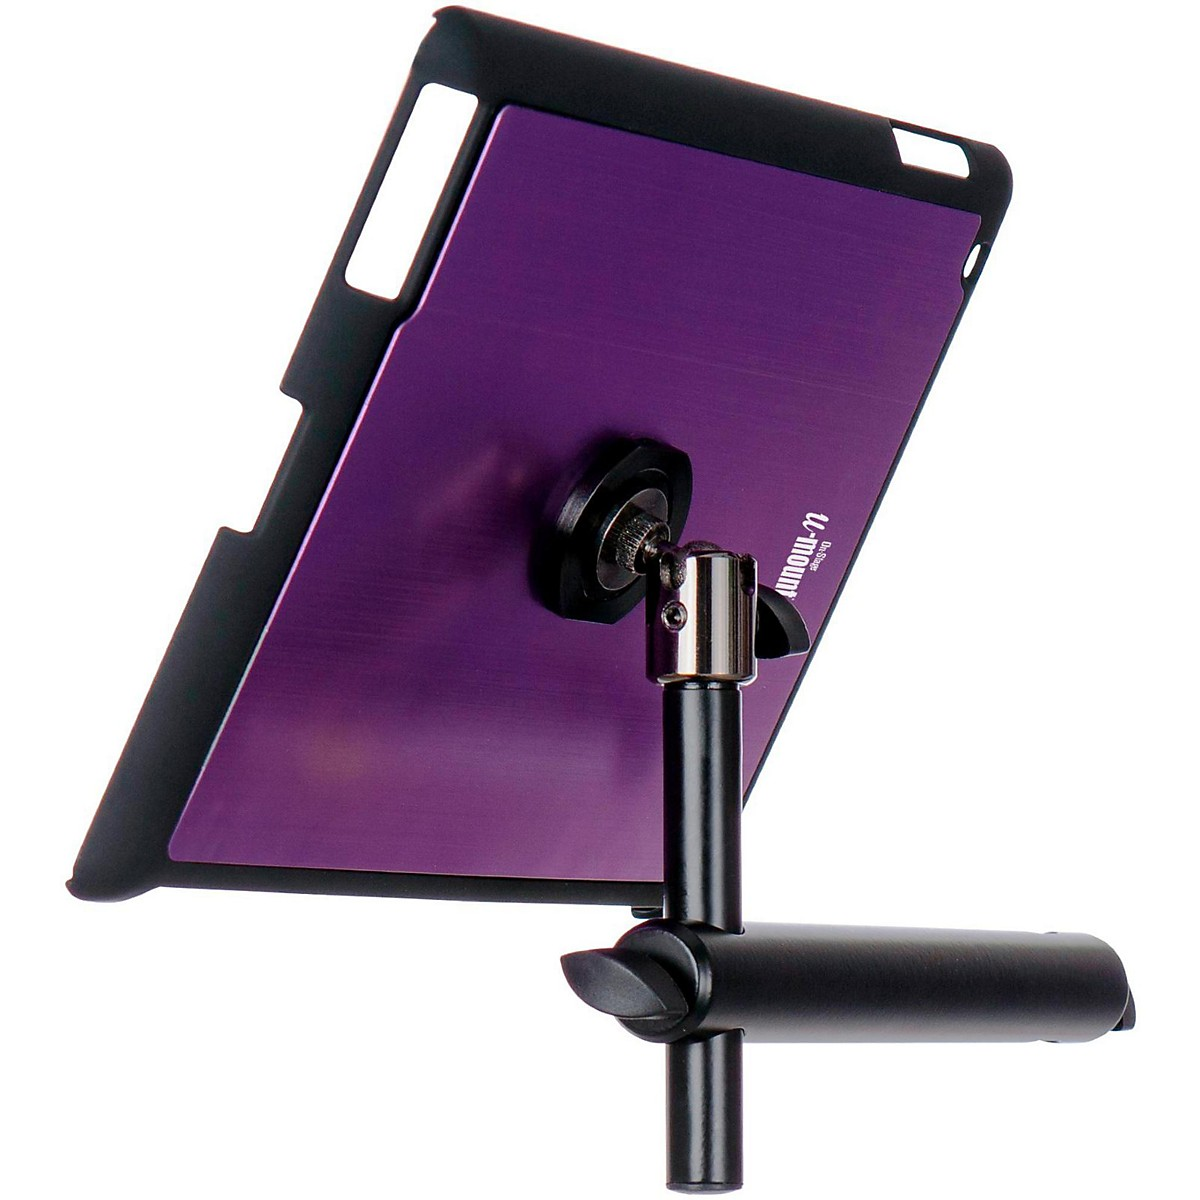 On-Stage TCM9160P Purple Tablet Mounting System with Snap-On Cover